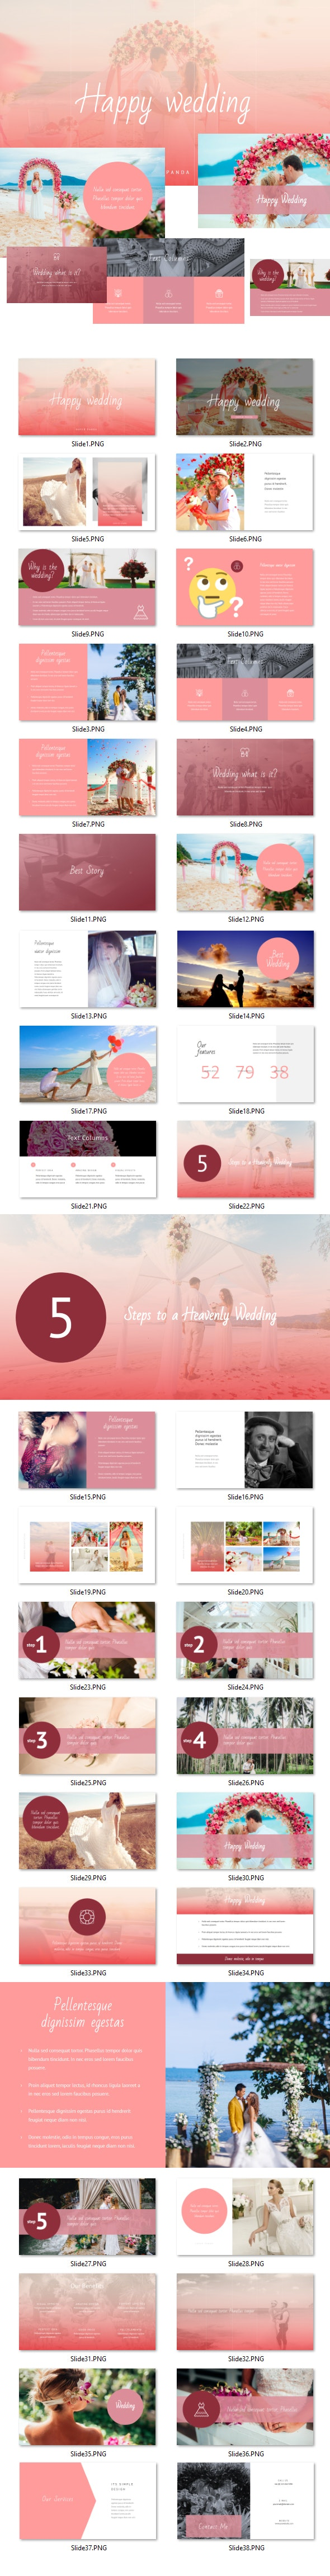 Wedding - Powerpoint - PowerPoint Templates Presentation Templates